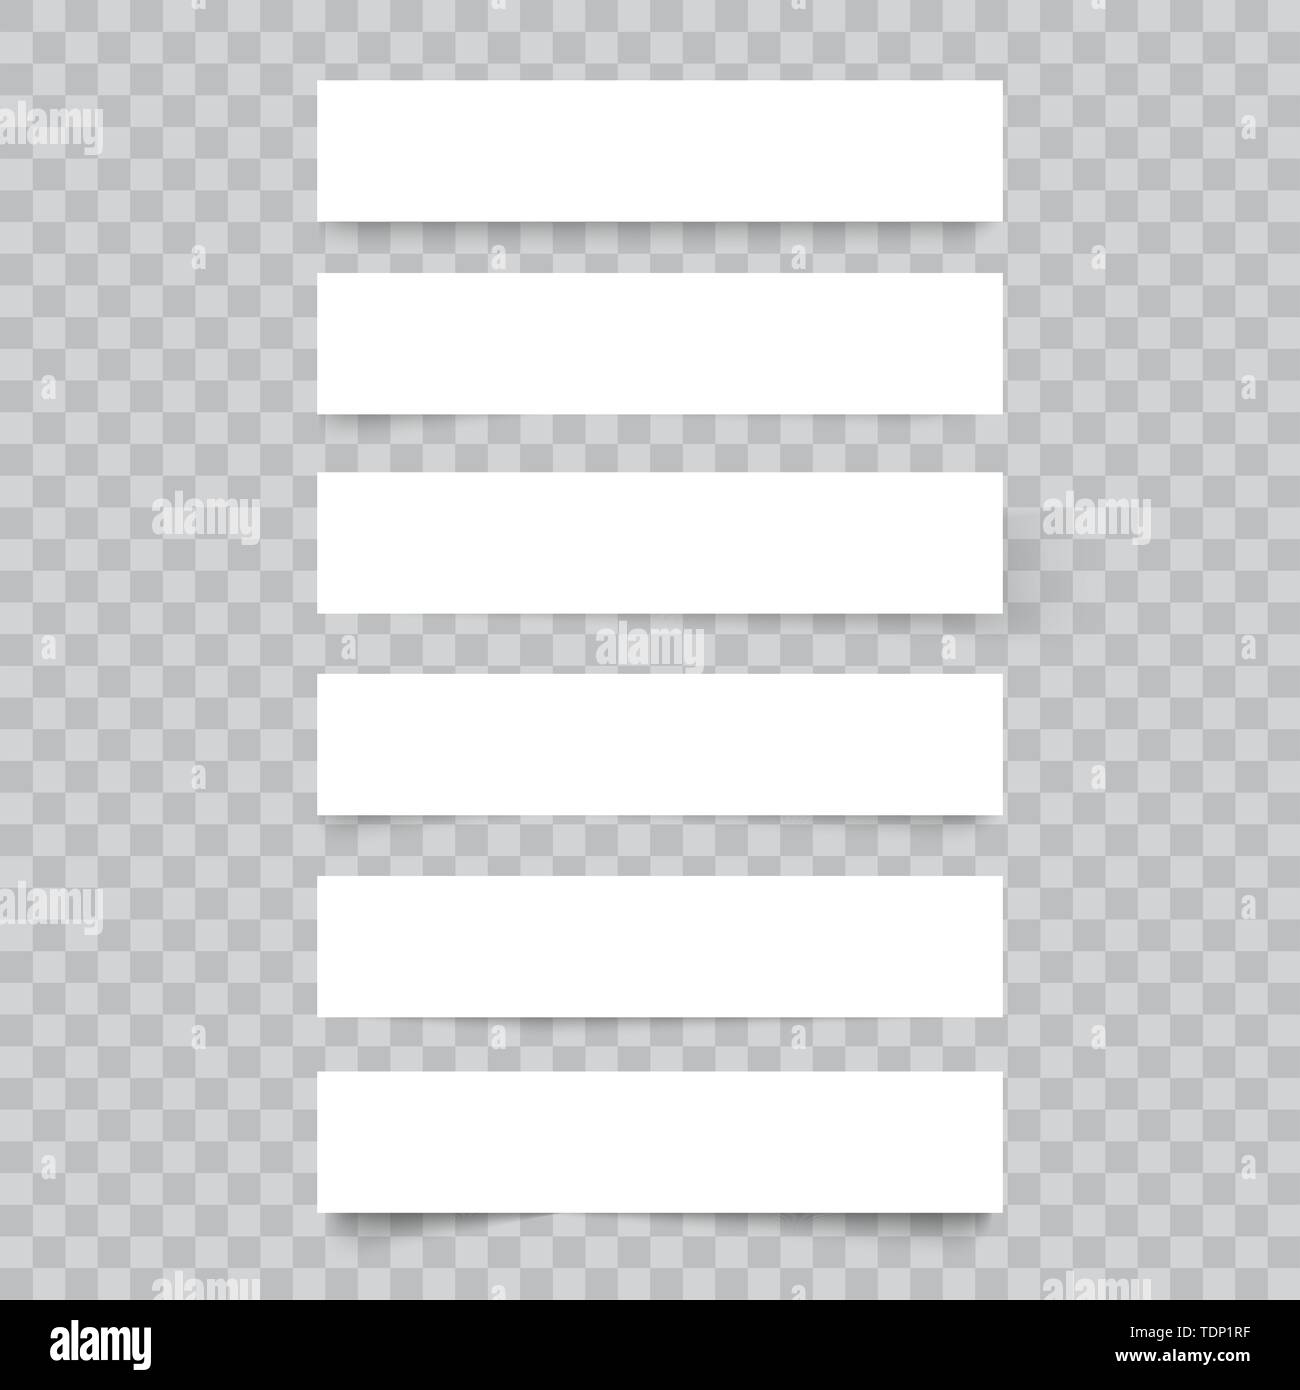 White frame banners on transparent background. Vector - Stock Image